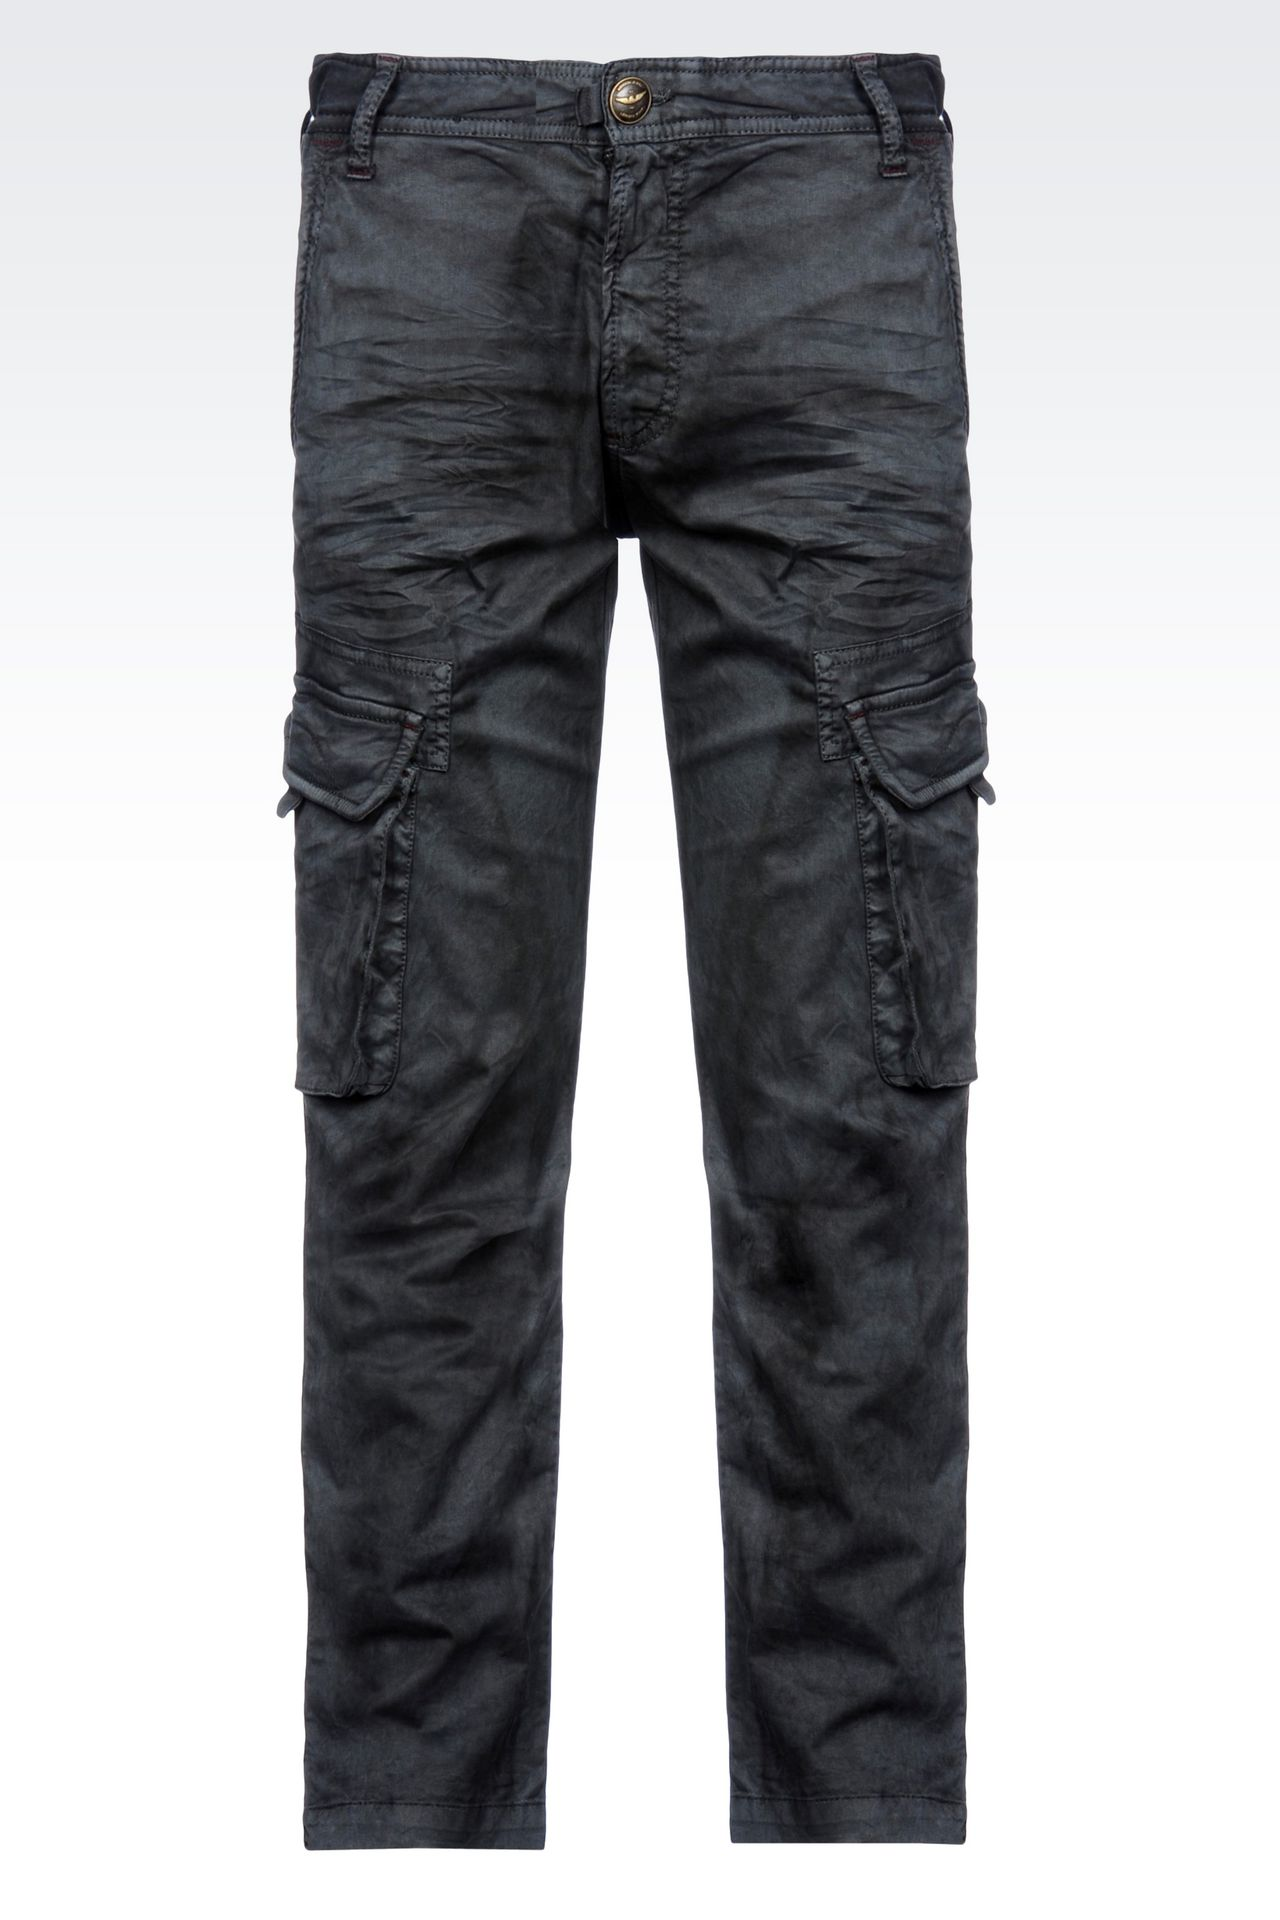 Armani Jeans Men CARGO PANTS IN STRETCH COTTON POPLIN - Armani.com